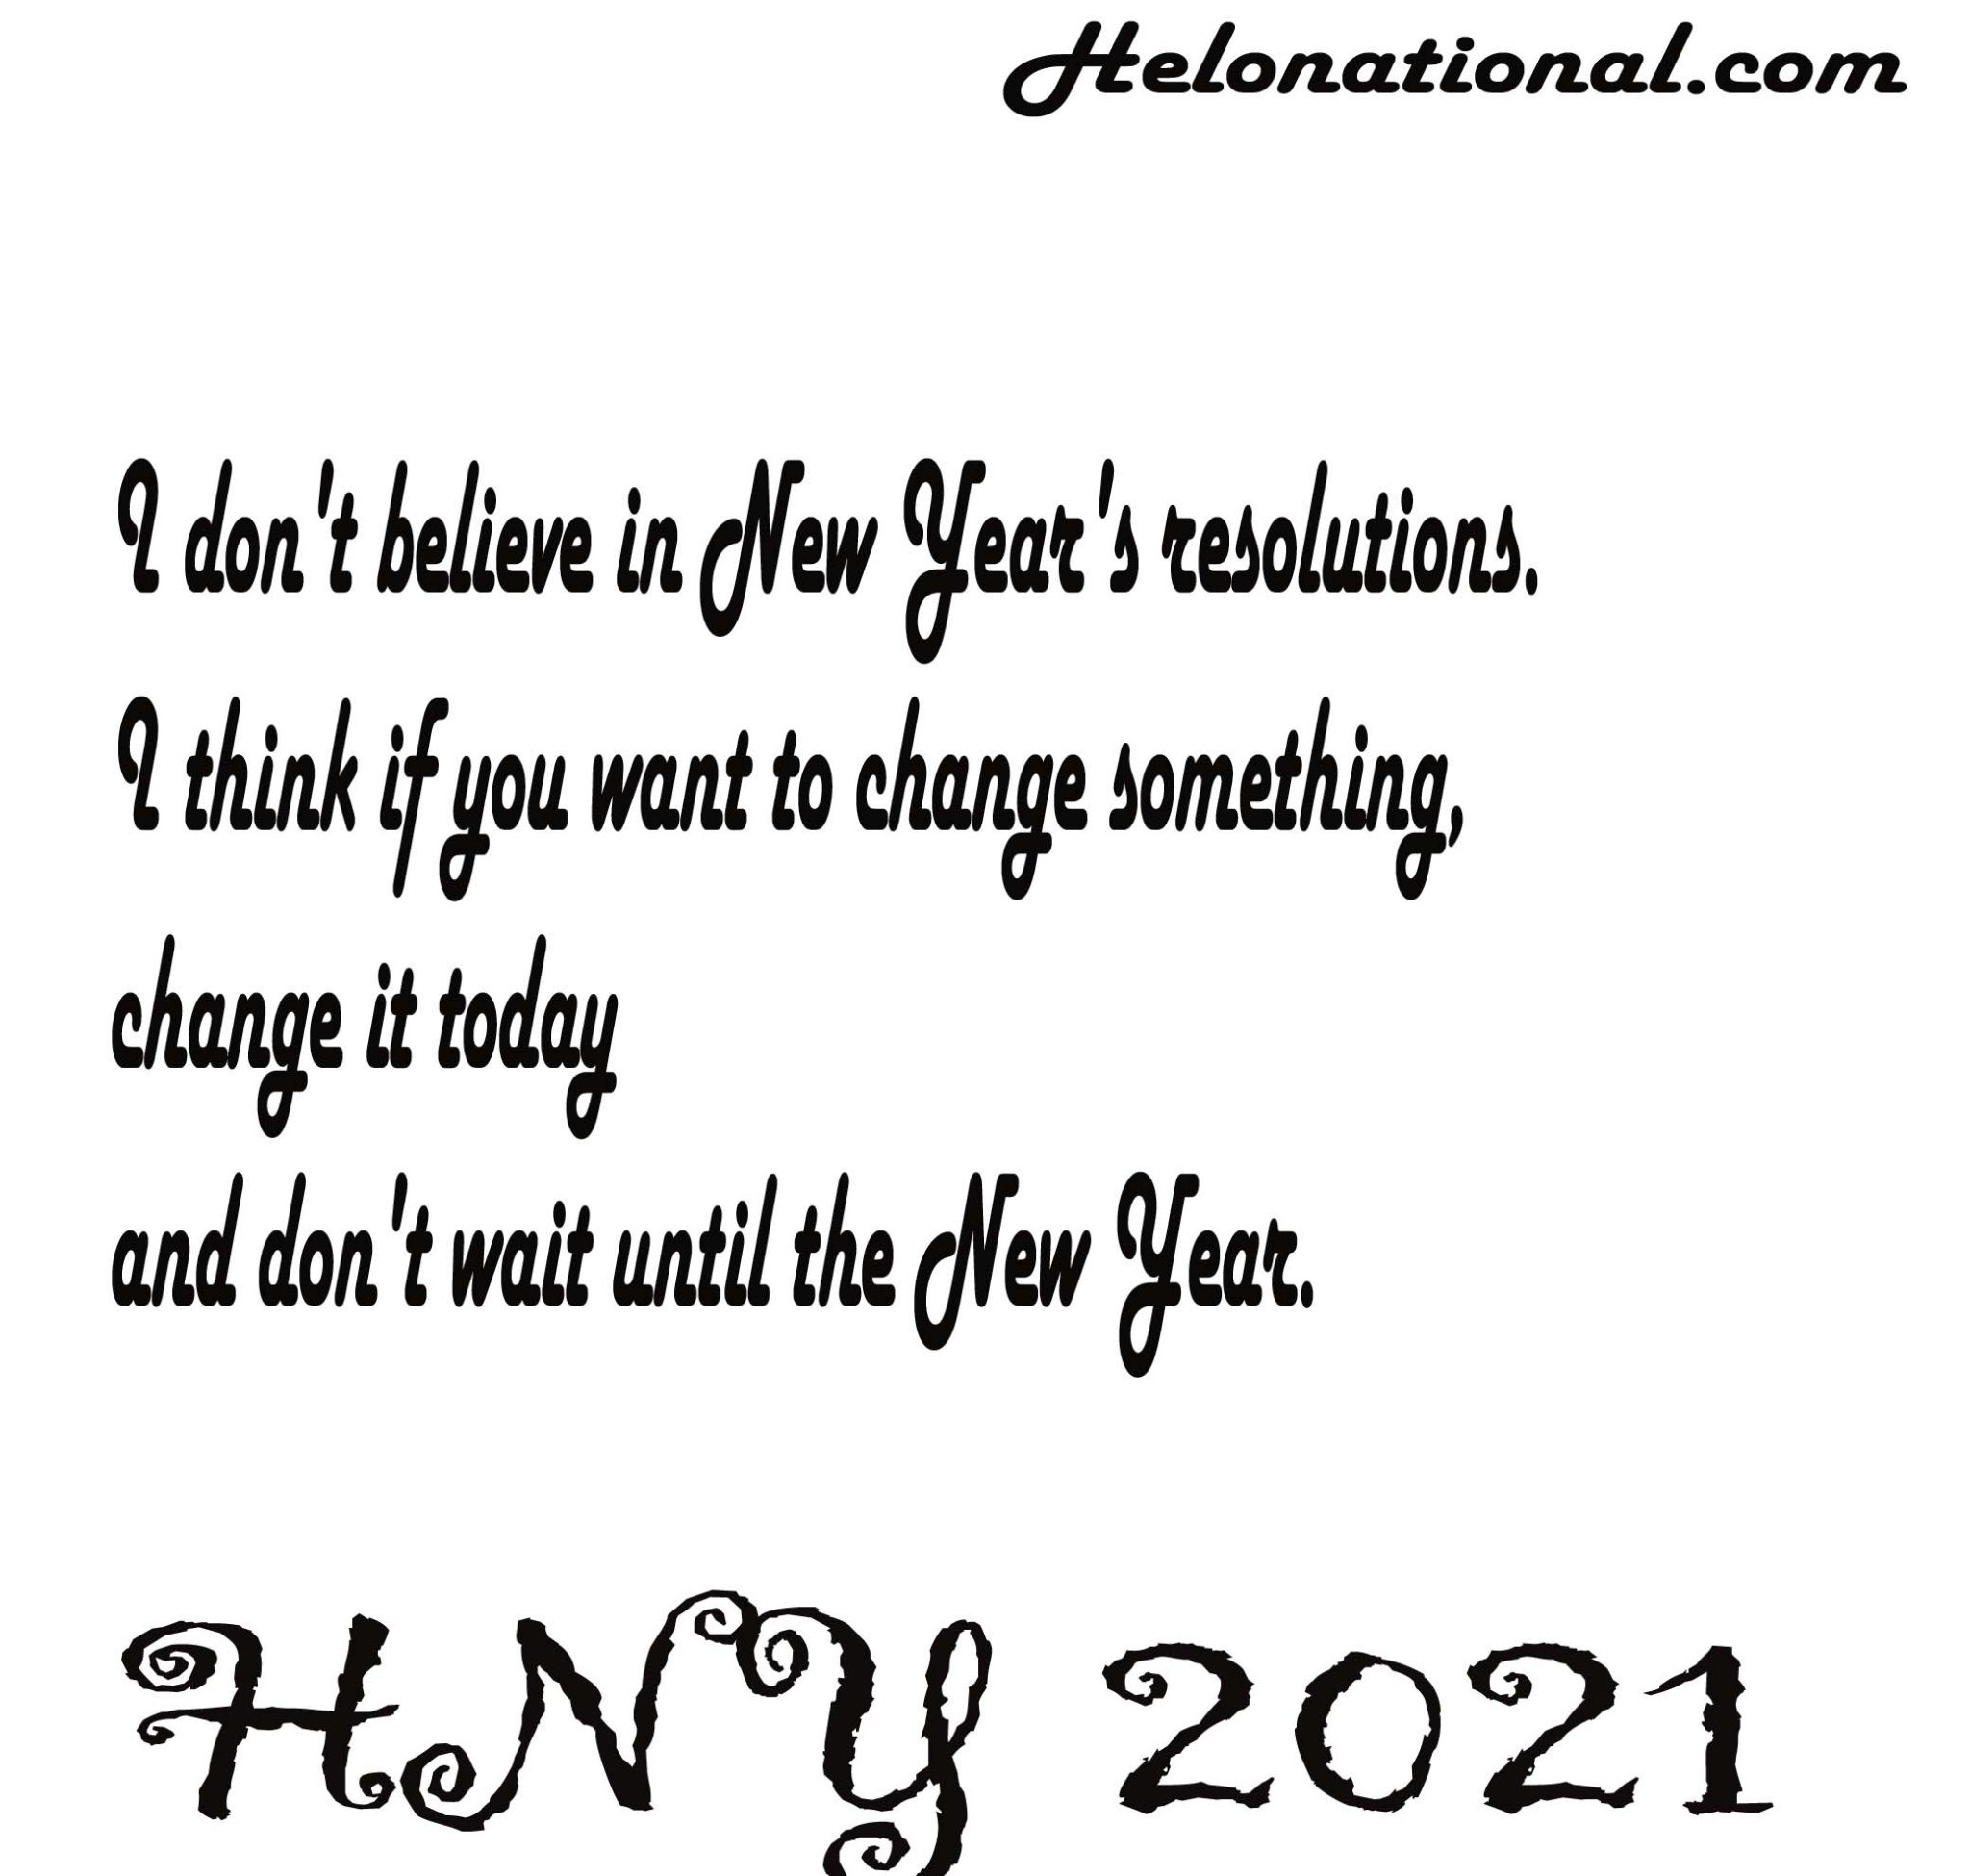 Happy new year 2021 resolution quotes